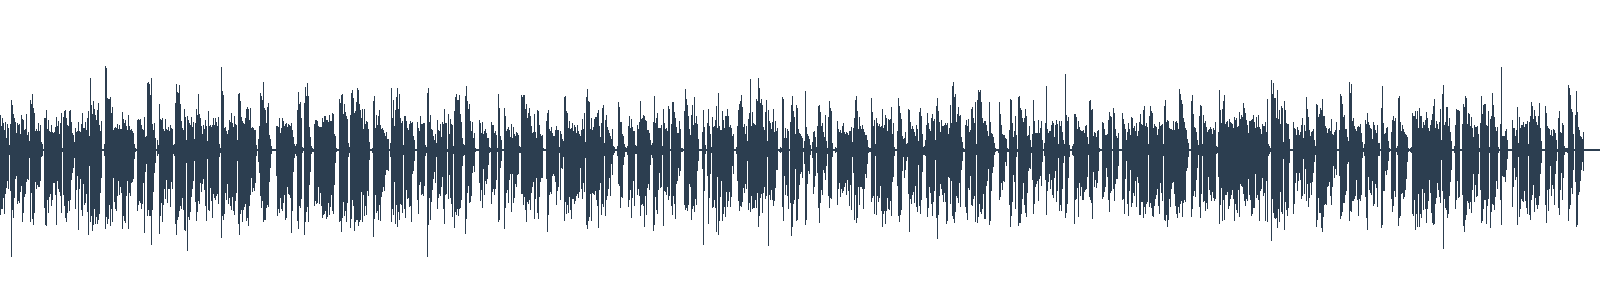 Rozum waveform